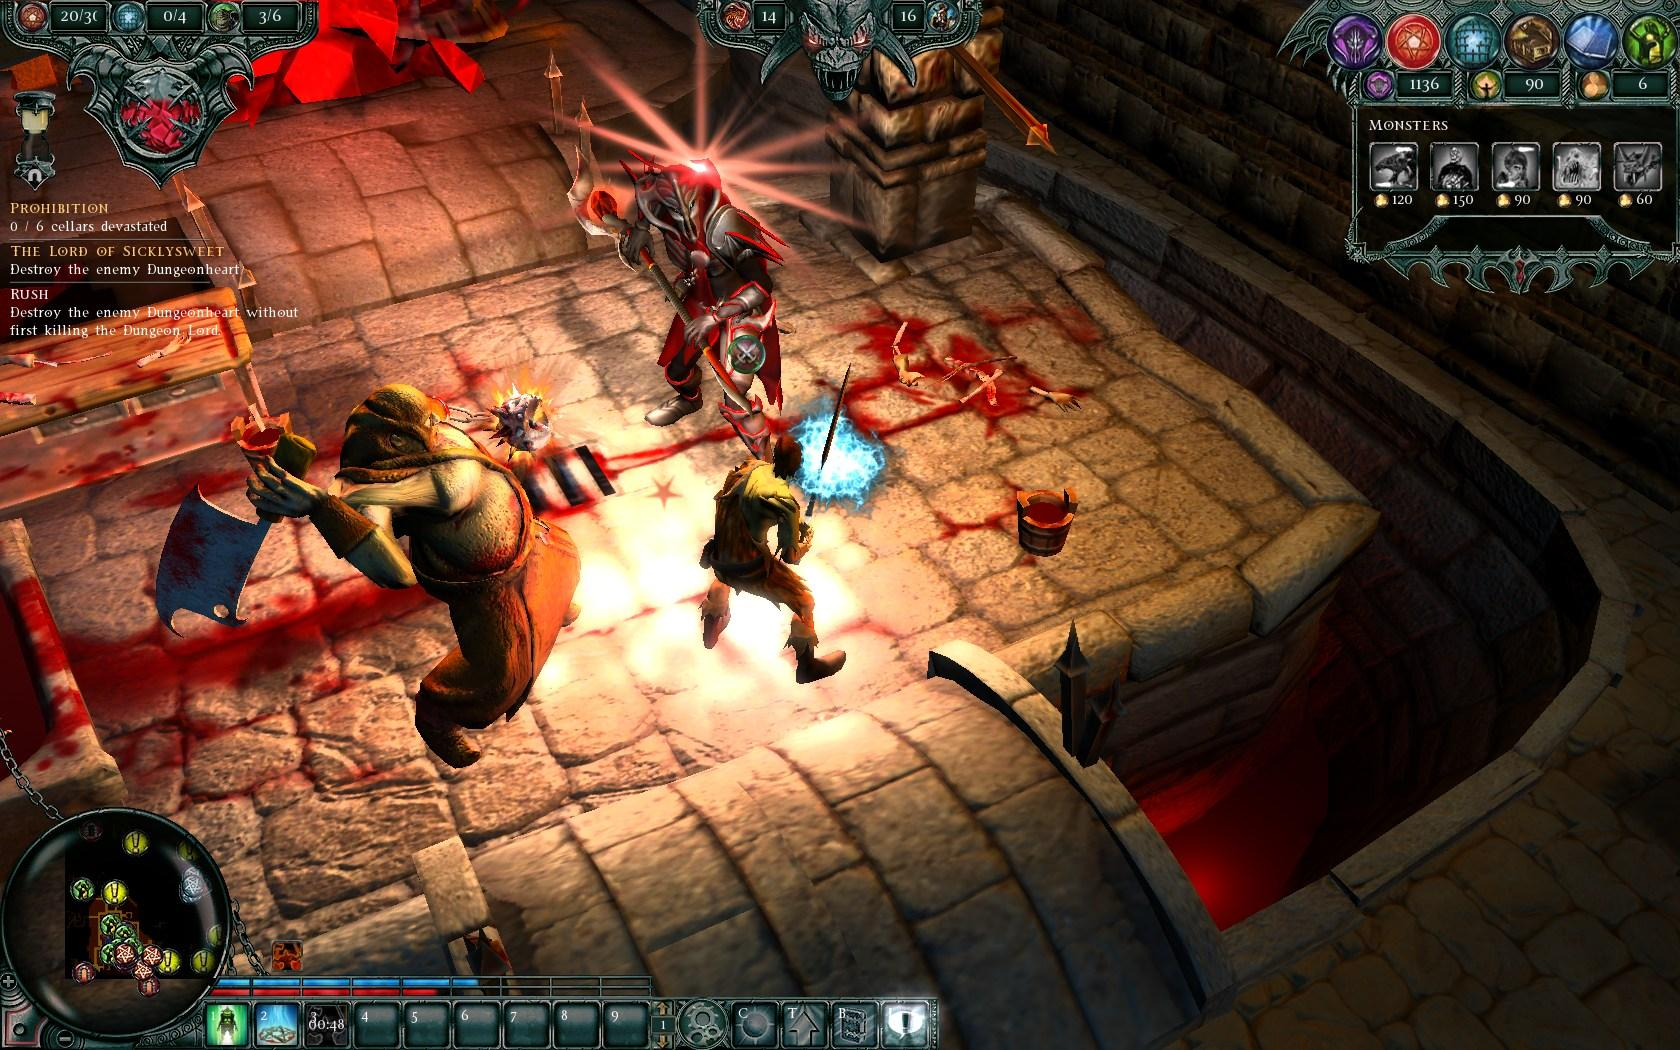 Galerie: Castlevania, Knights Contract, Dungeons a Stacking 27837